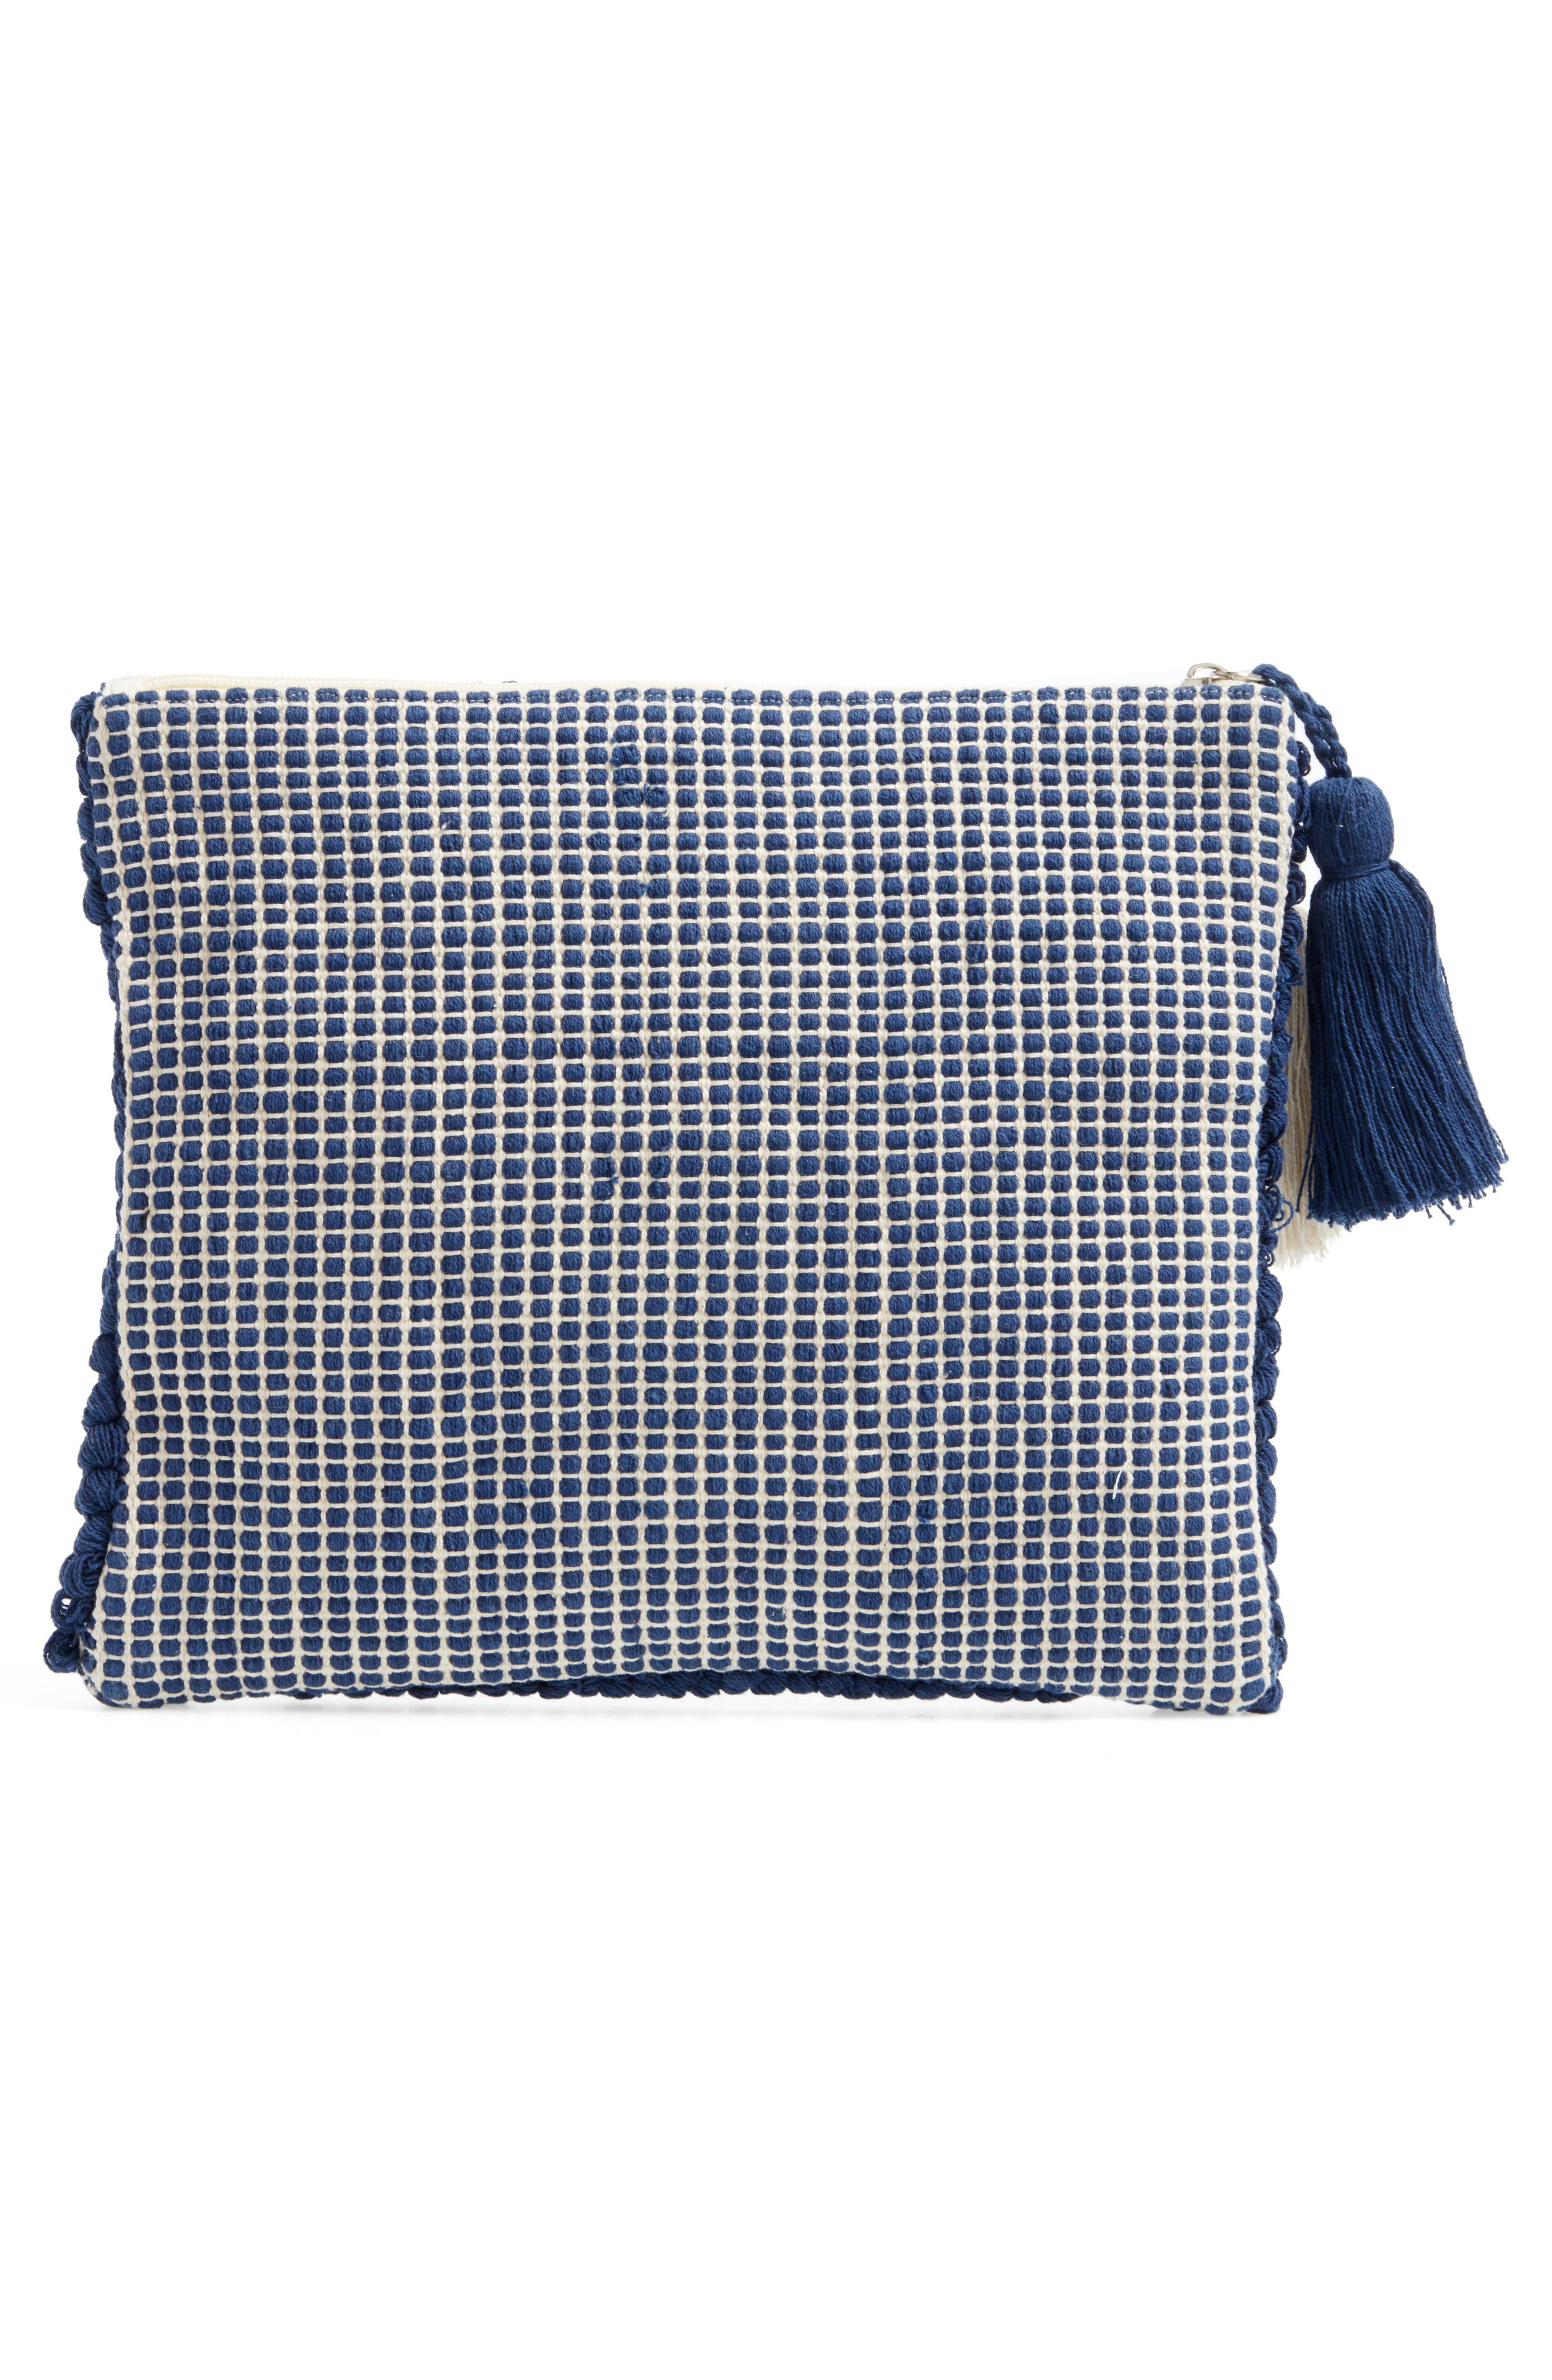 Palisades Tasseled Woven Clutch,                             Alternate thumbnail 14, color,